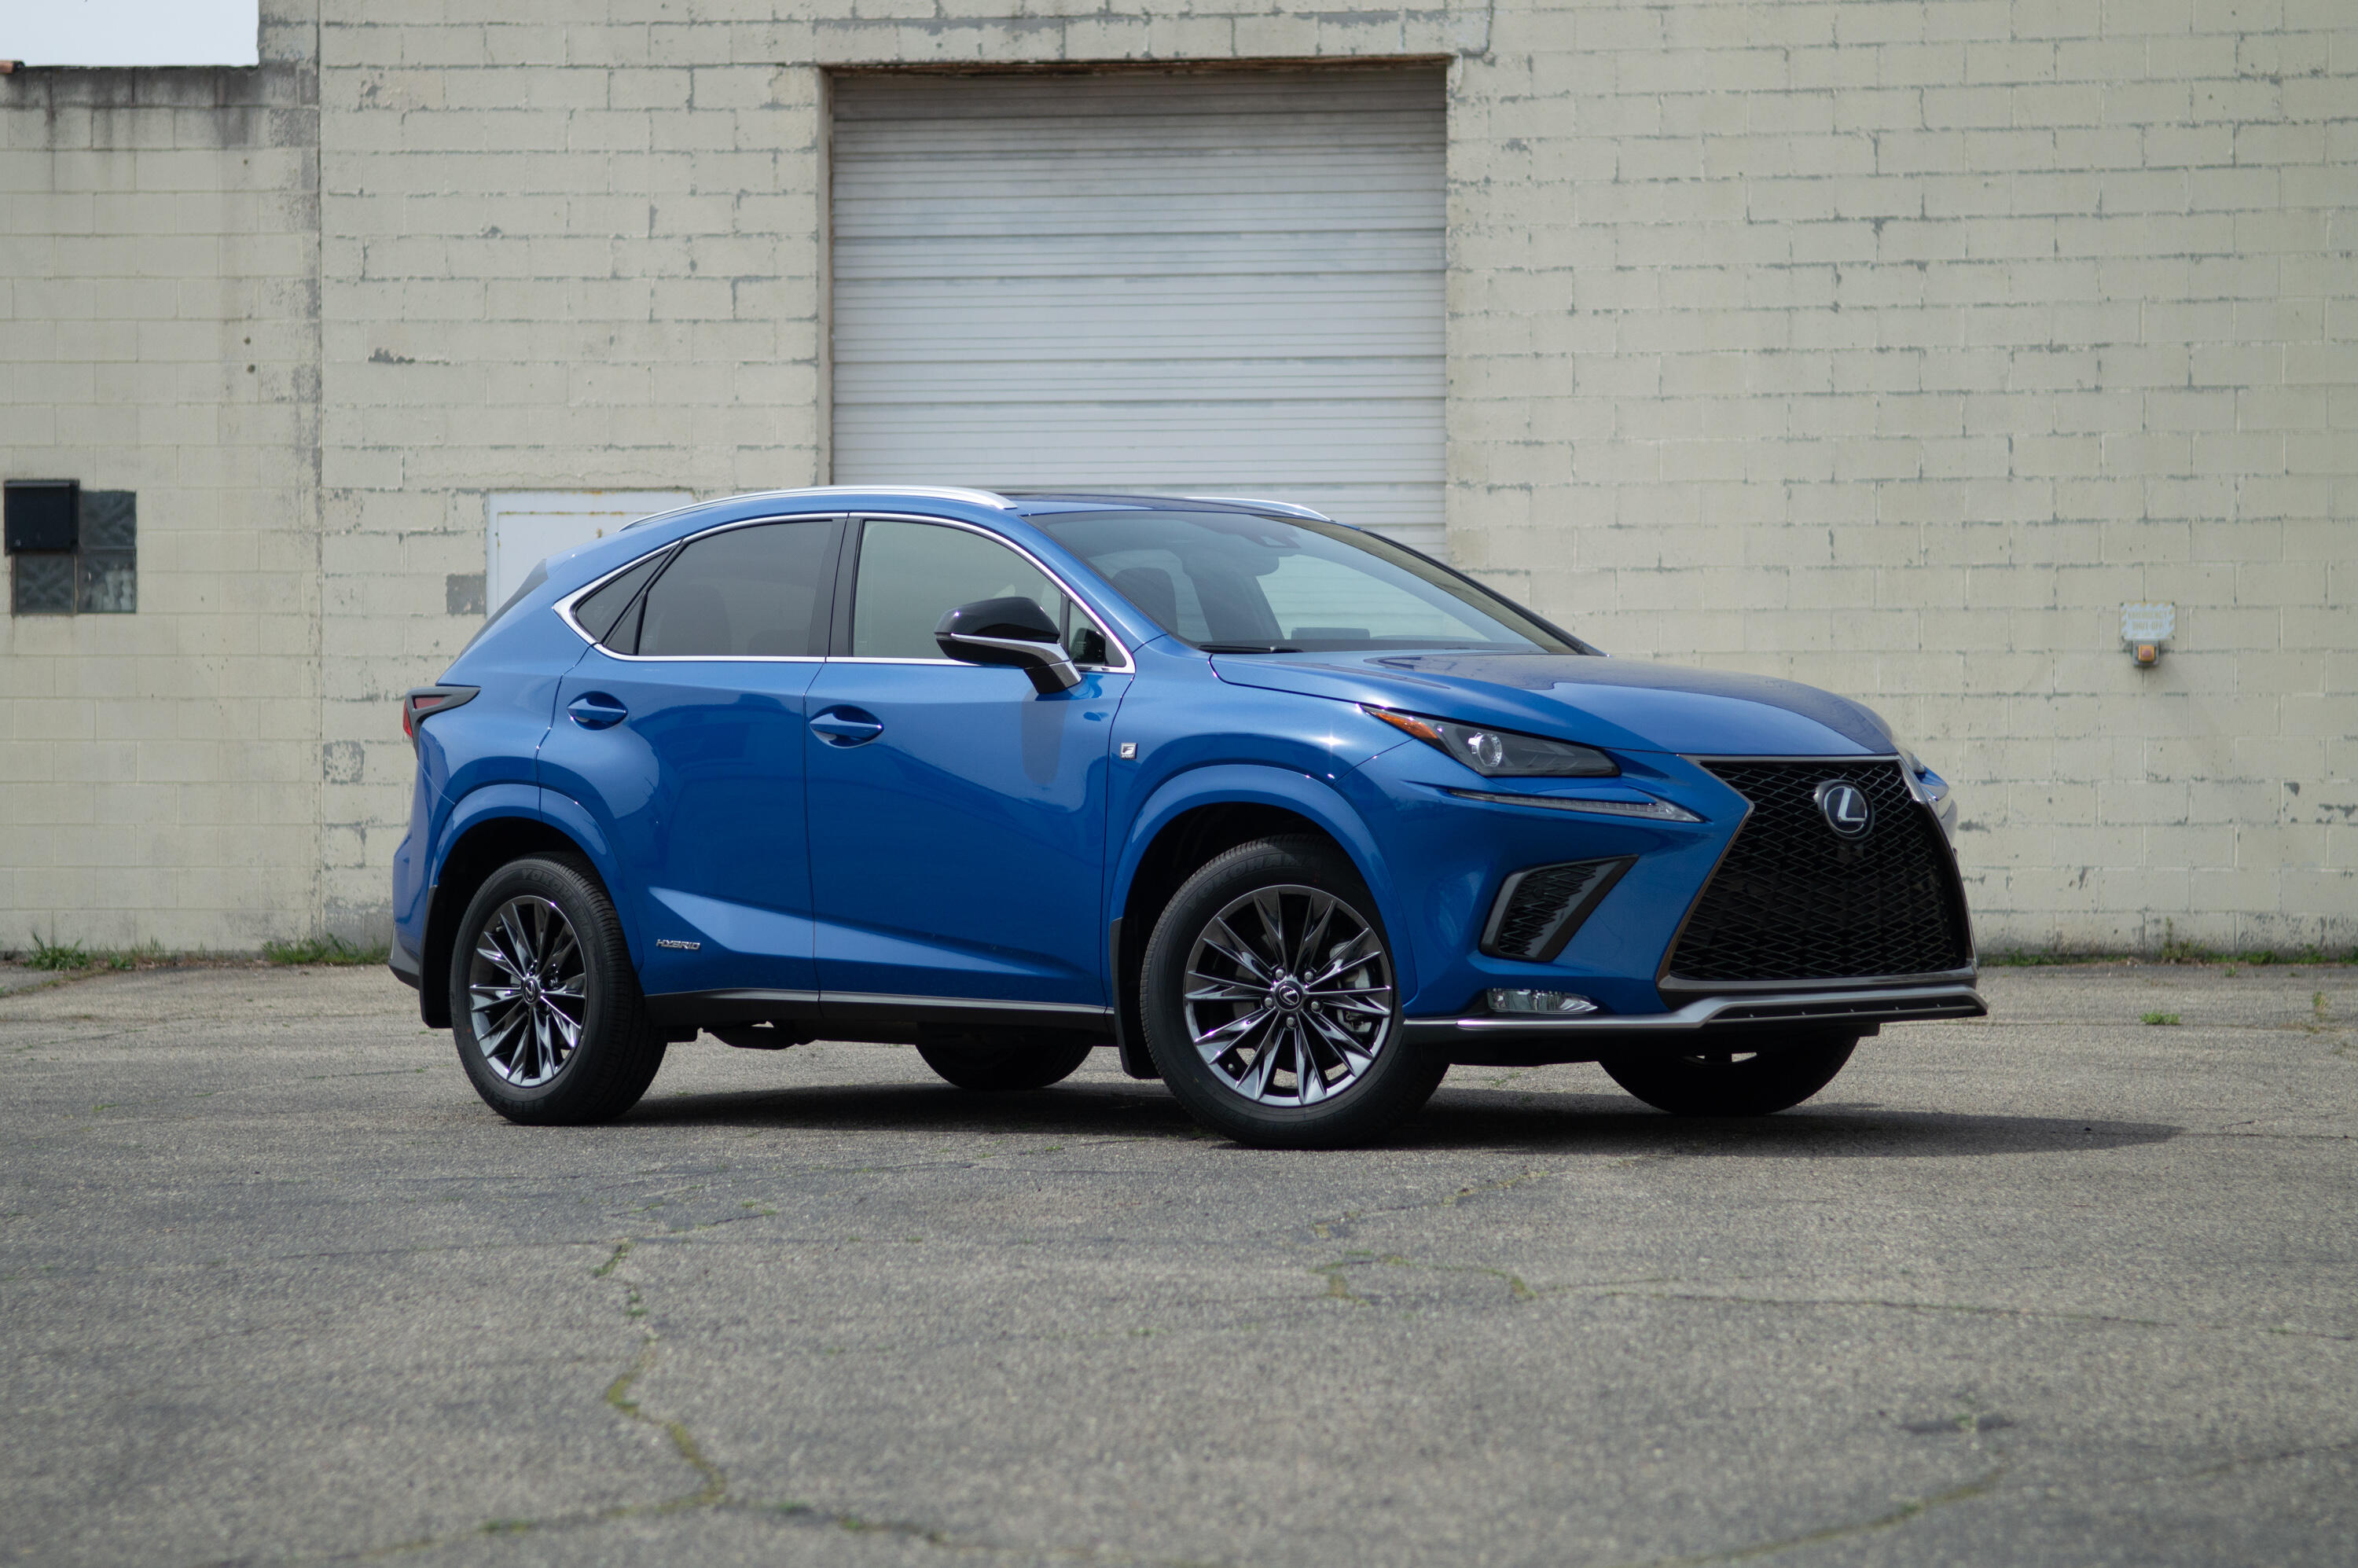 2021 Lexus NX 300h review: Nothing you haven't seen before     - Roadshow